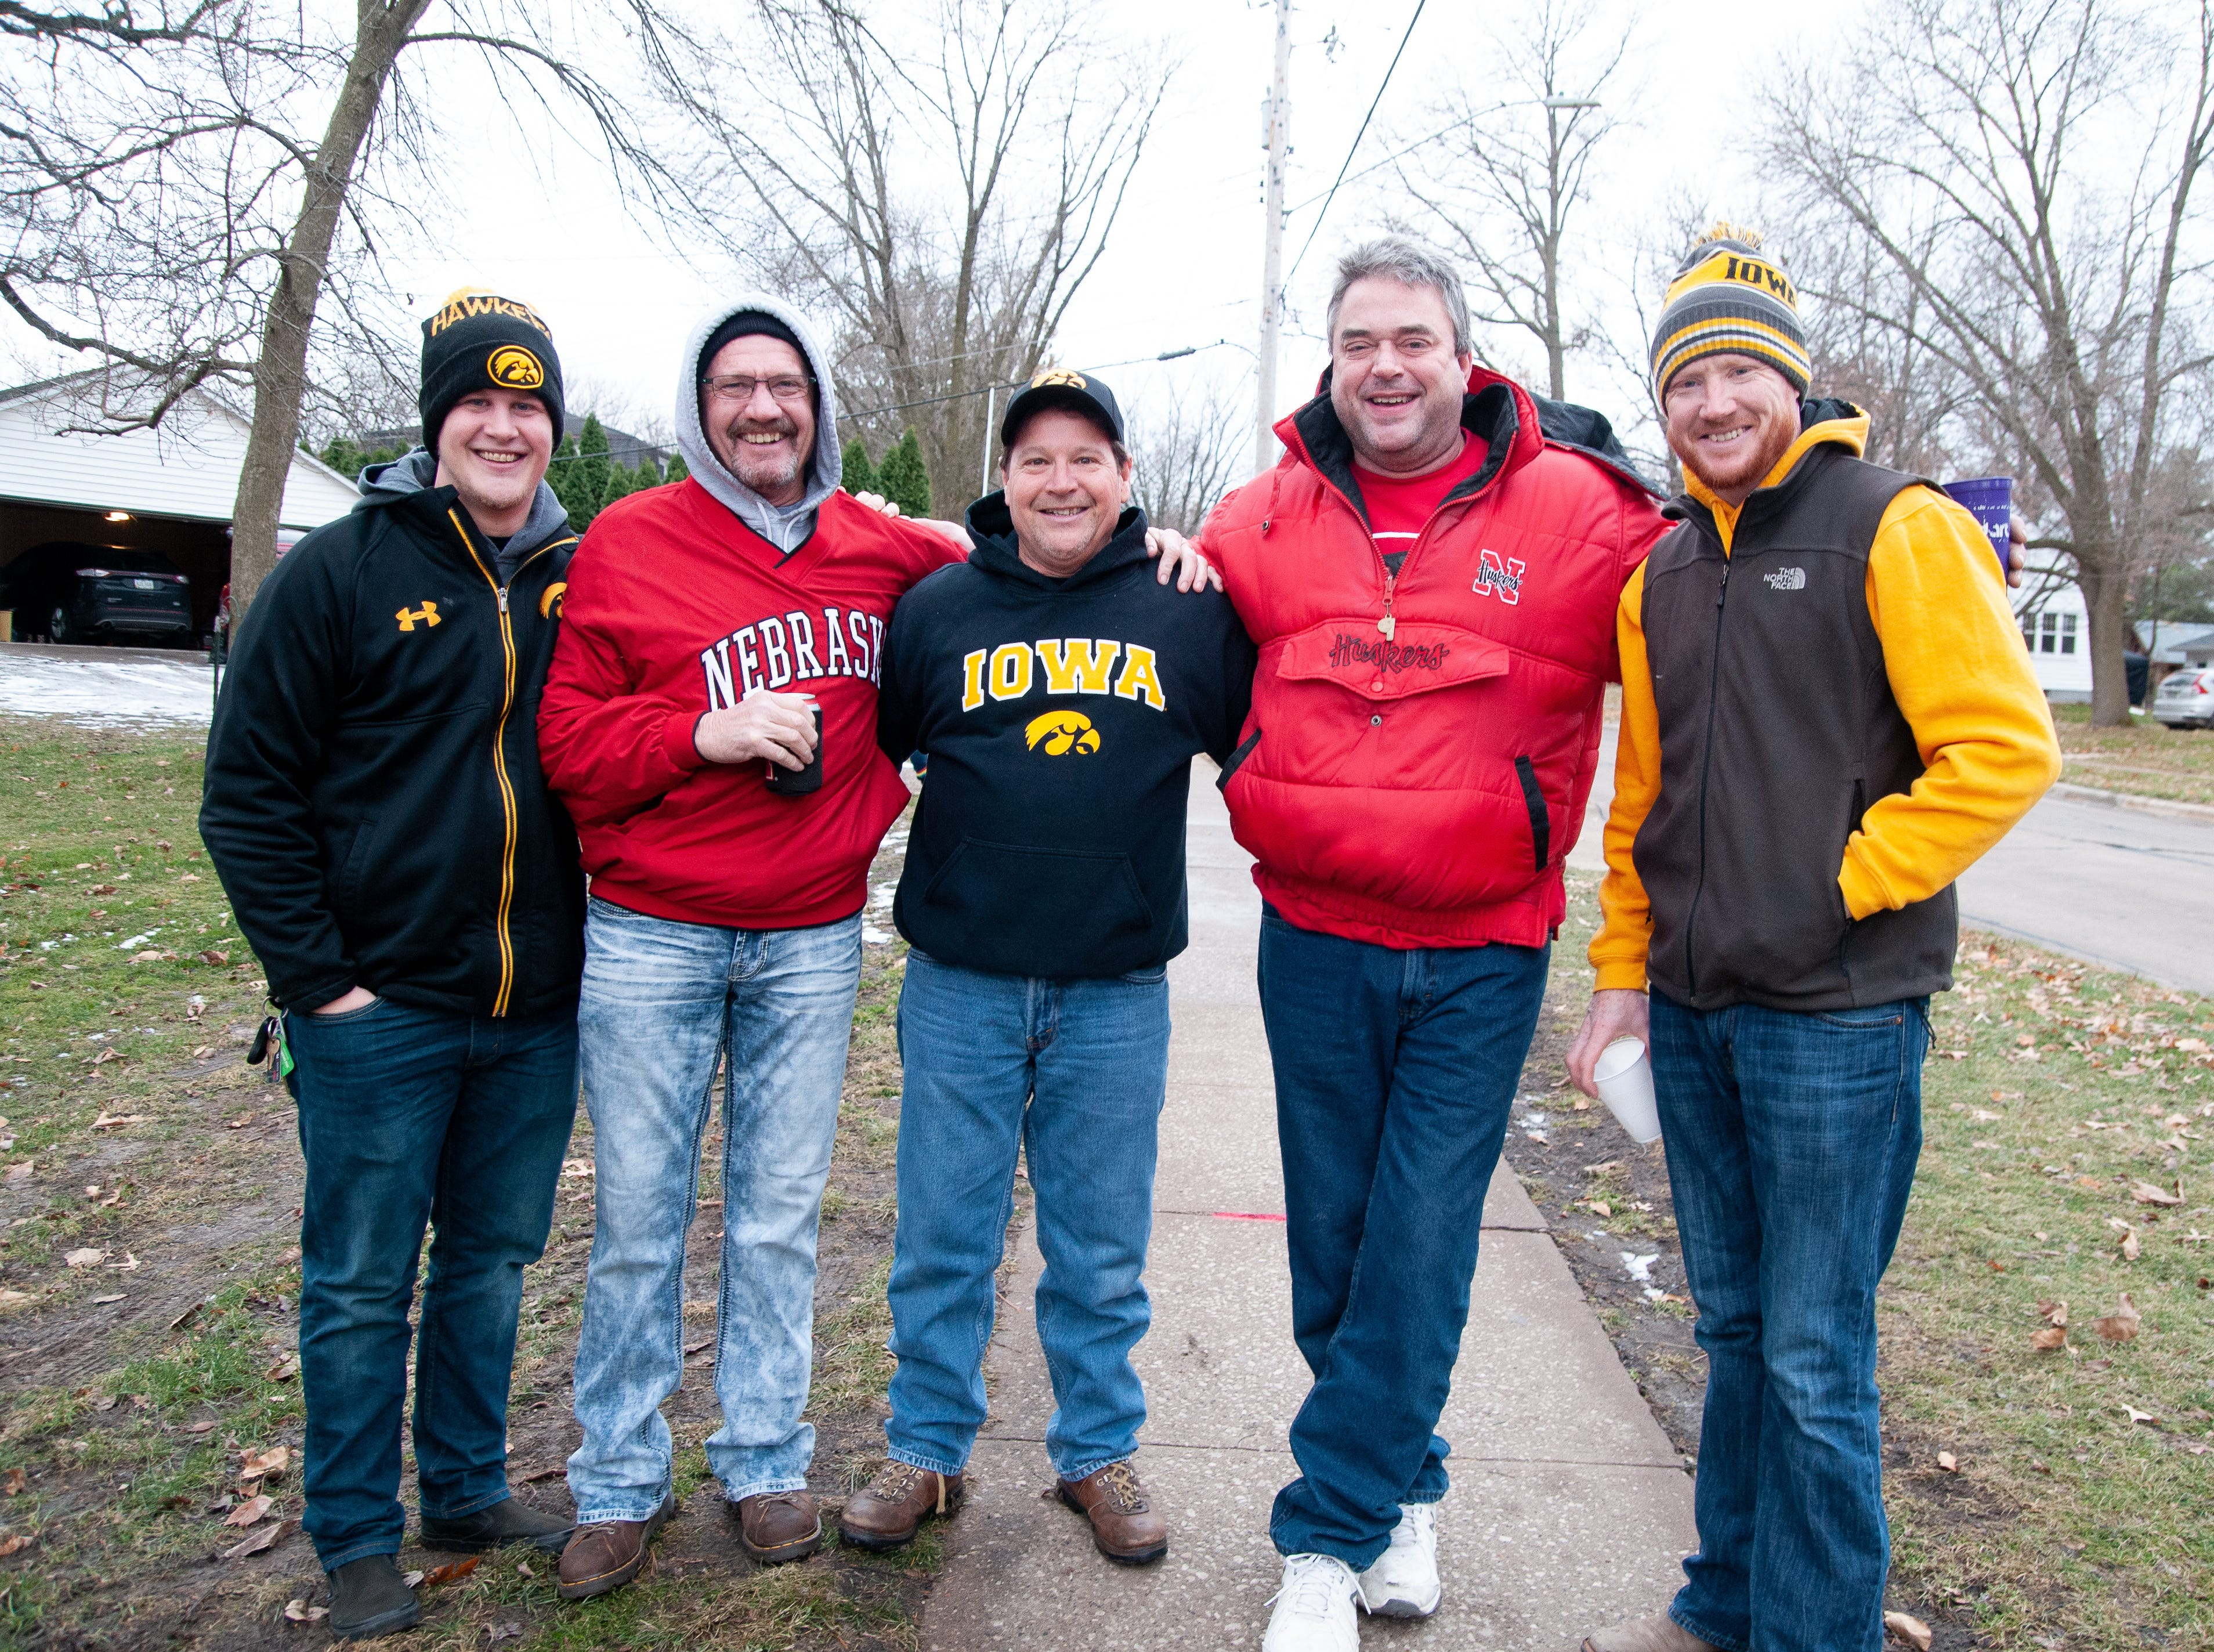 The German family, of Des Moines and Omaha, Friday, Nov. 23, 2018, while tailgating before the Iowa game against Nebraska in Iowa City.